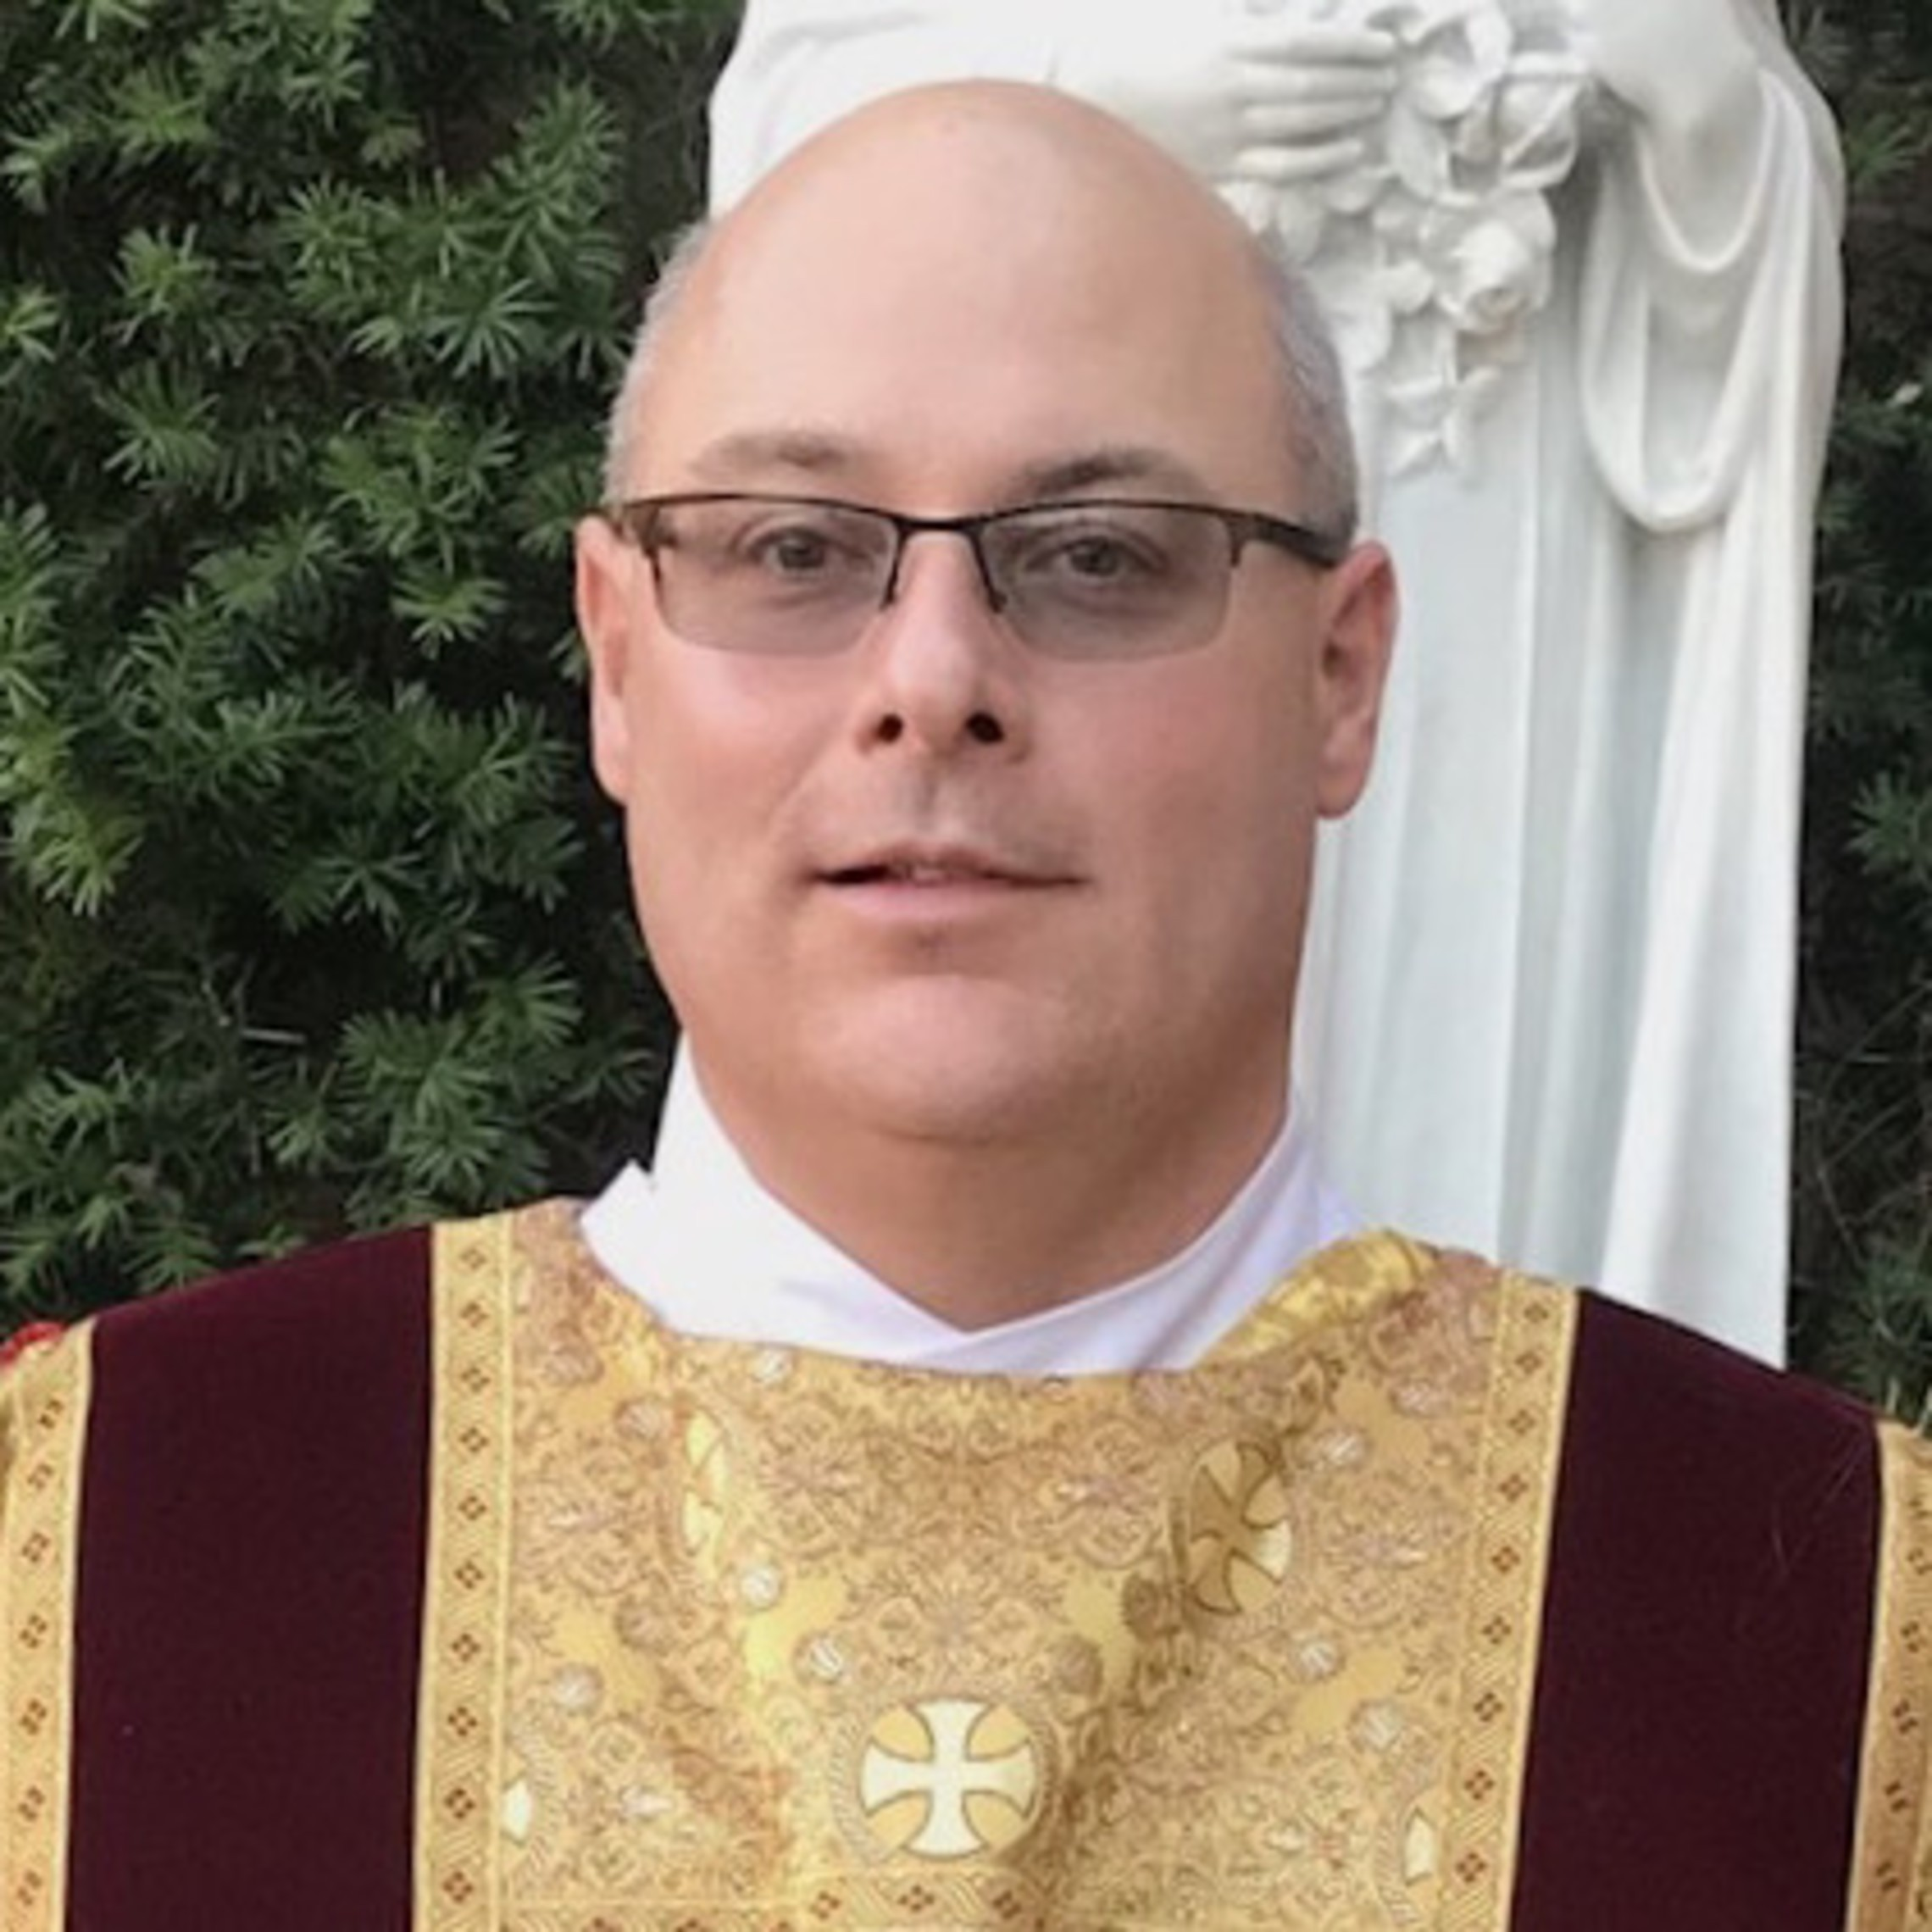 Deacon Mike Muse